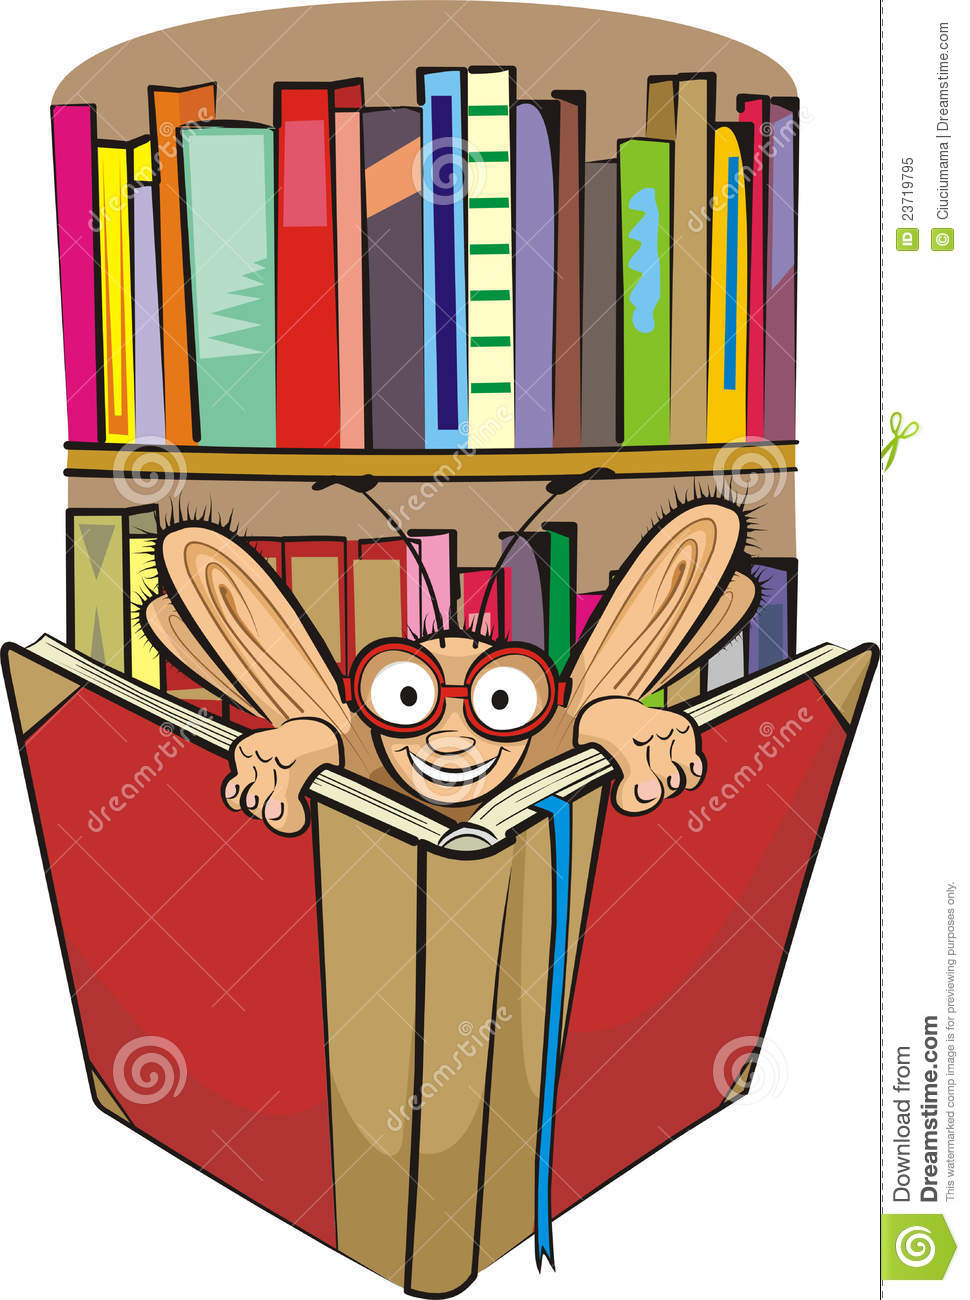 Bookworm And Library Royalty Free Stock Photo - Image ...